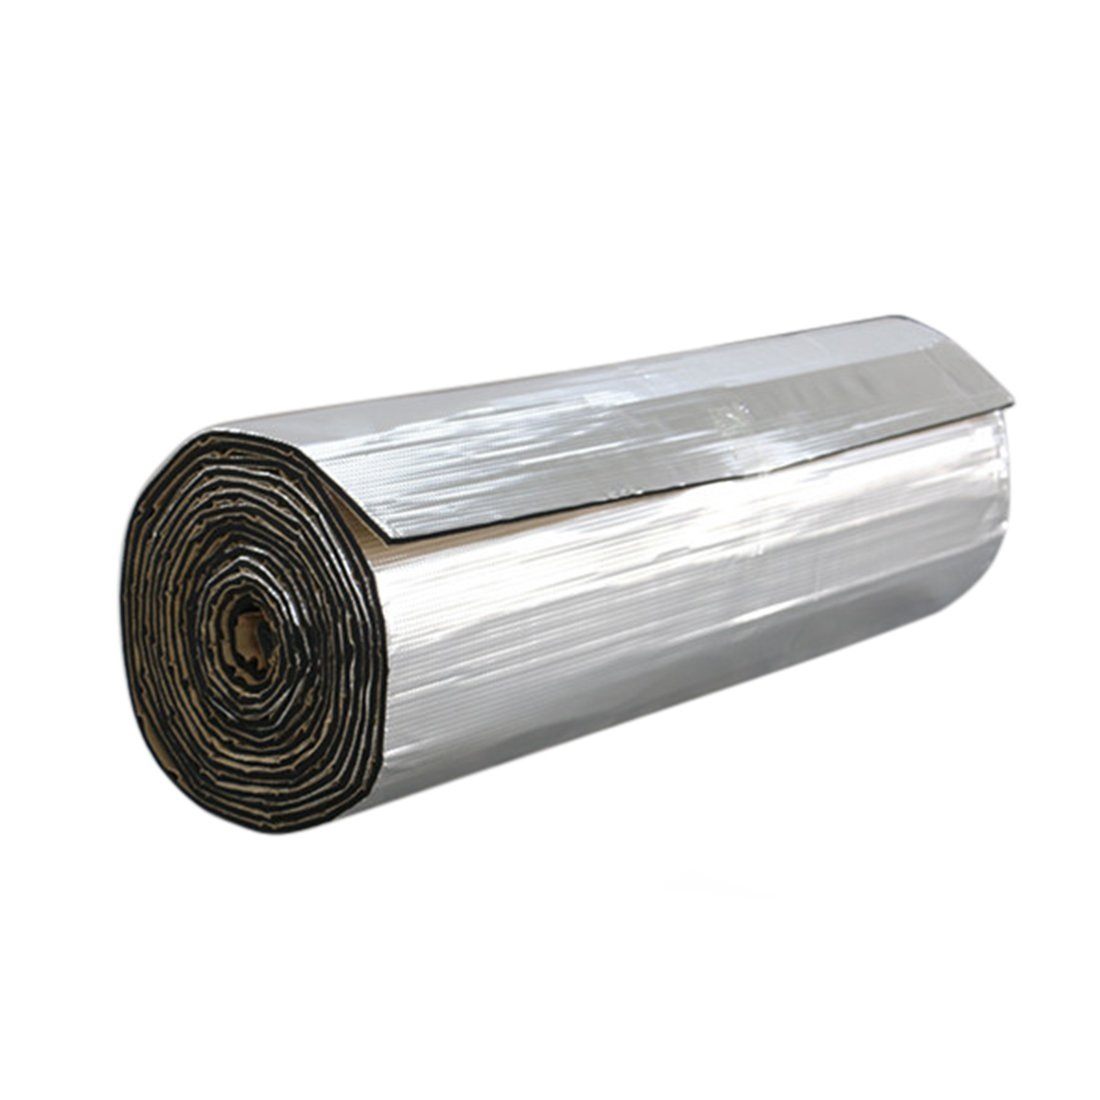 uxcell 40'x40' 394mil/10mm 10.76sqft Car Truck Van Sound Deadener Heat Insulation Silencer Underlay Mat Carpet a16080100ux0637